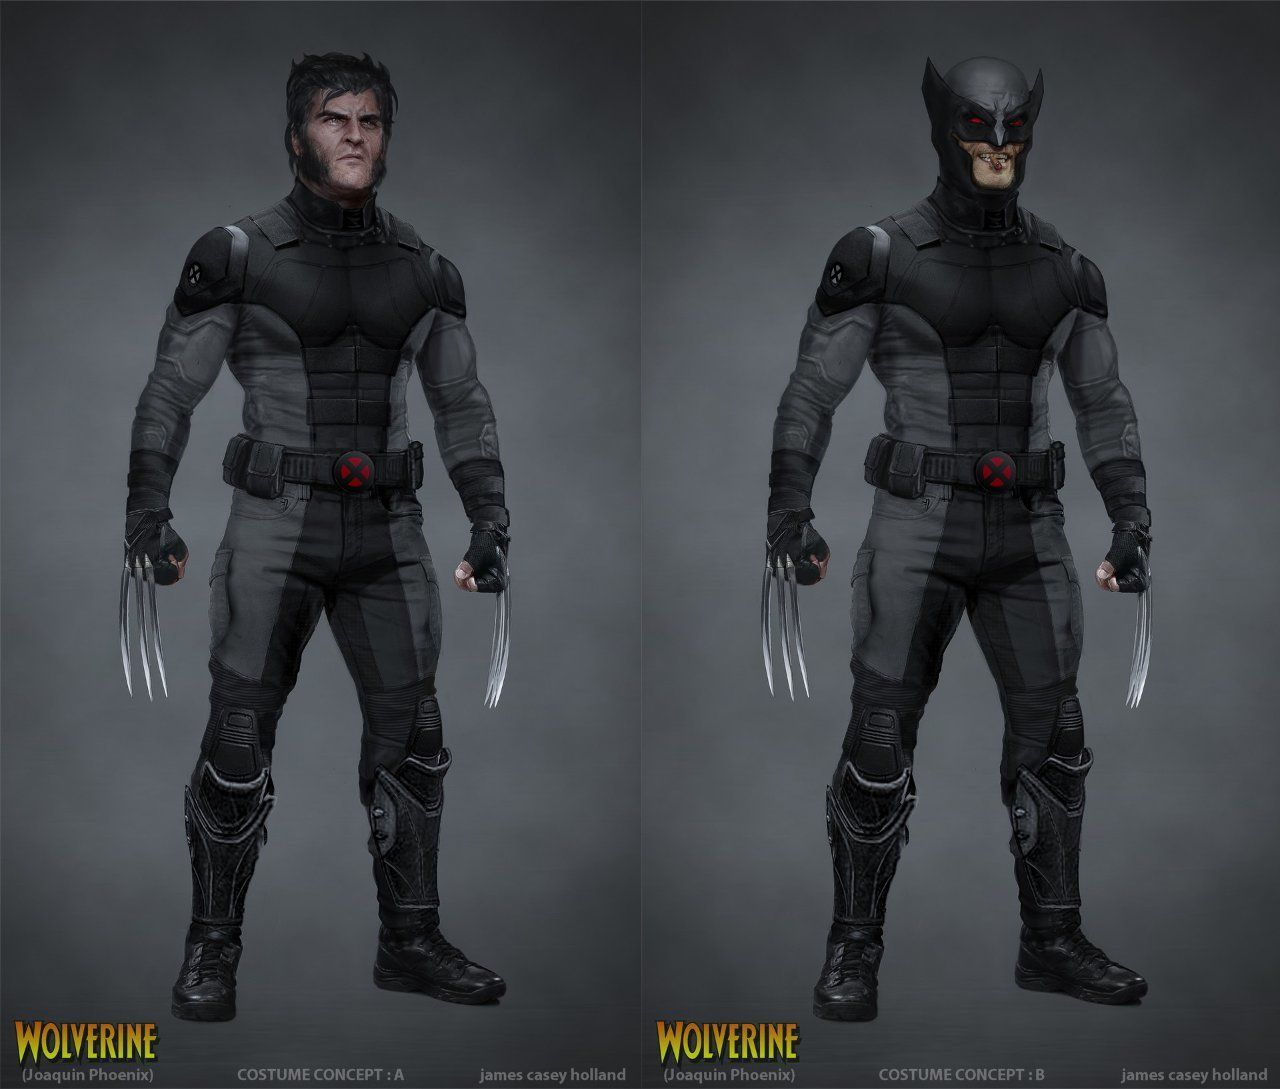 This Should Be The Mcu Wolverine Costume After Disney Buys